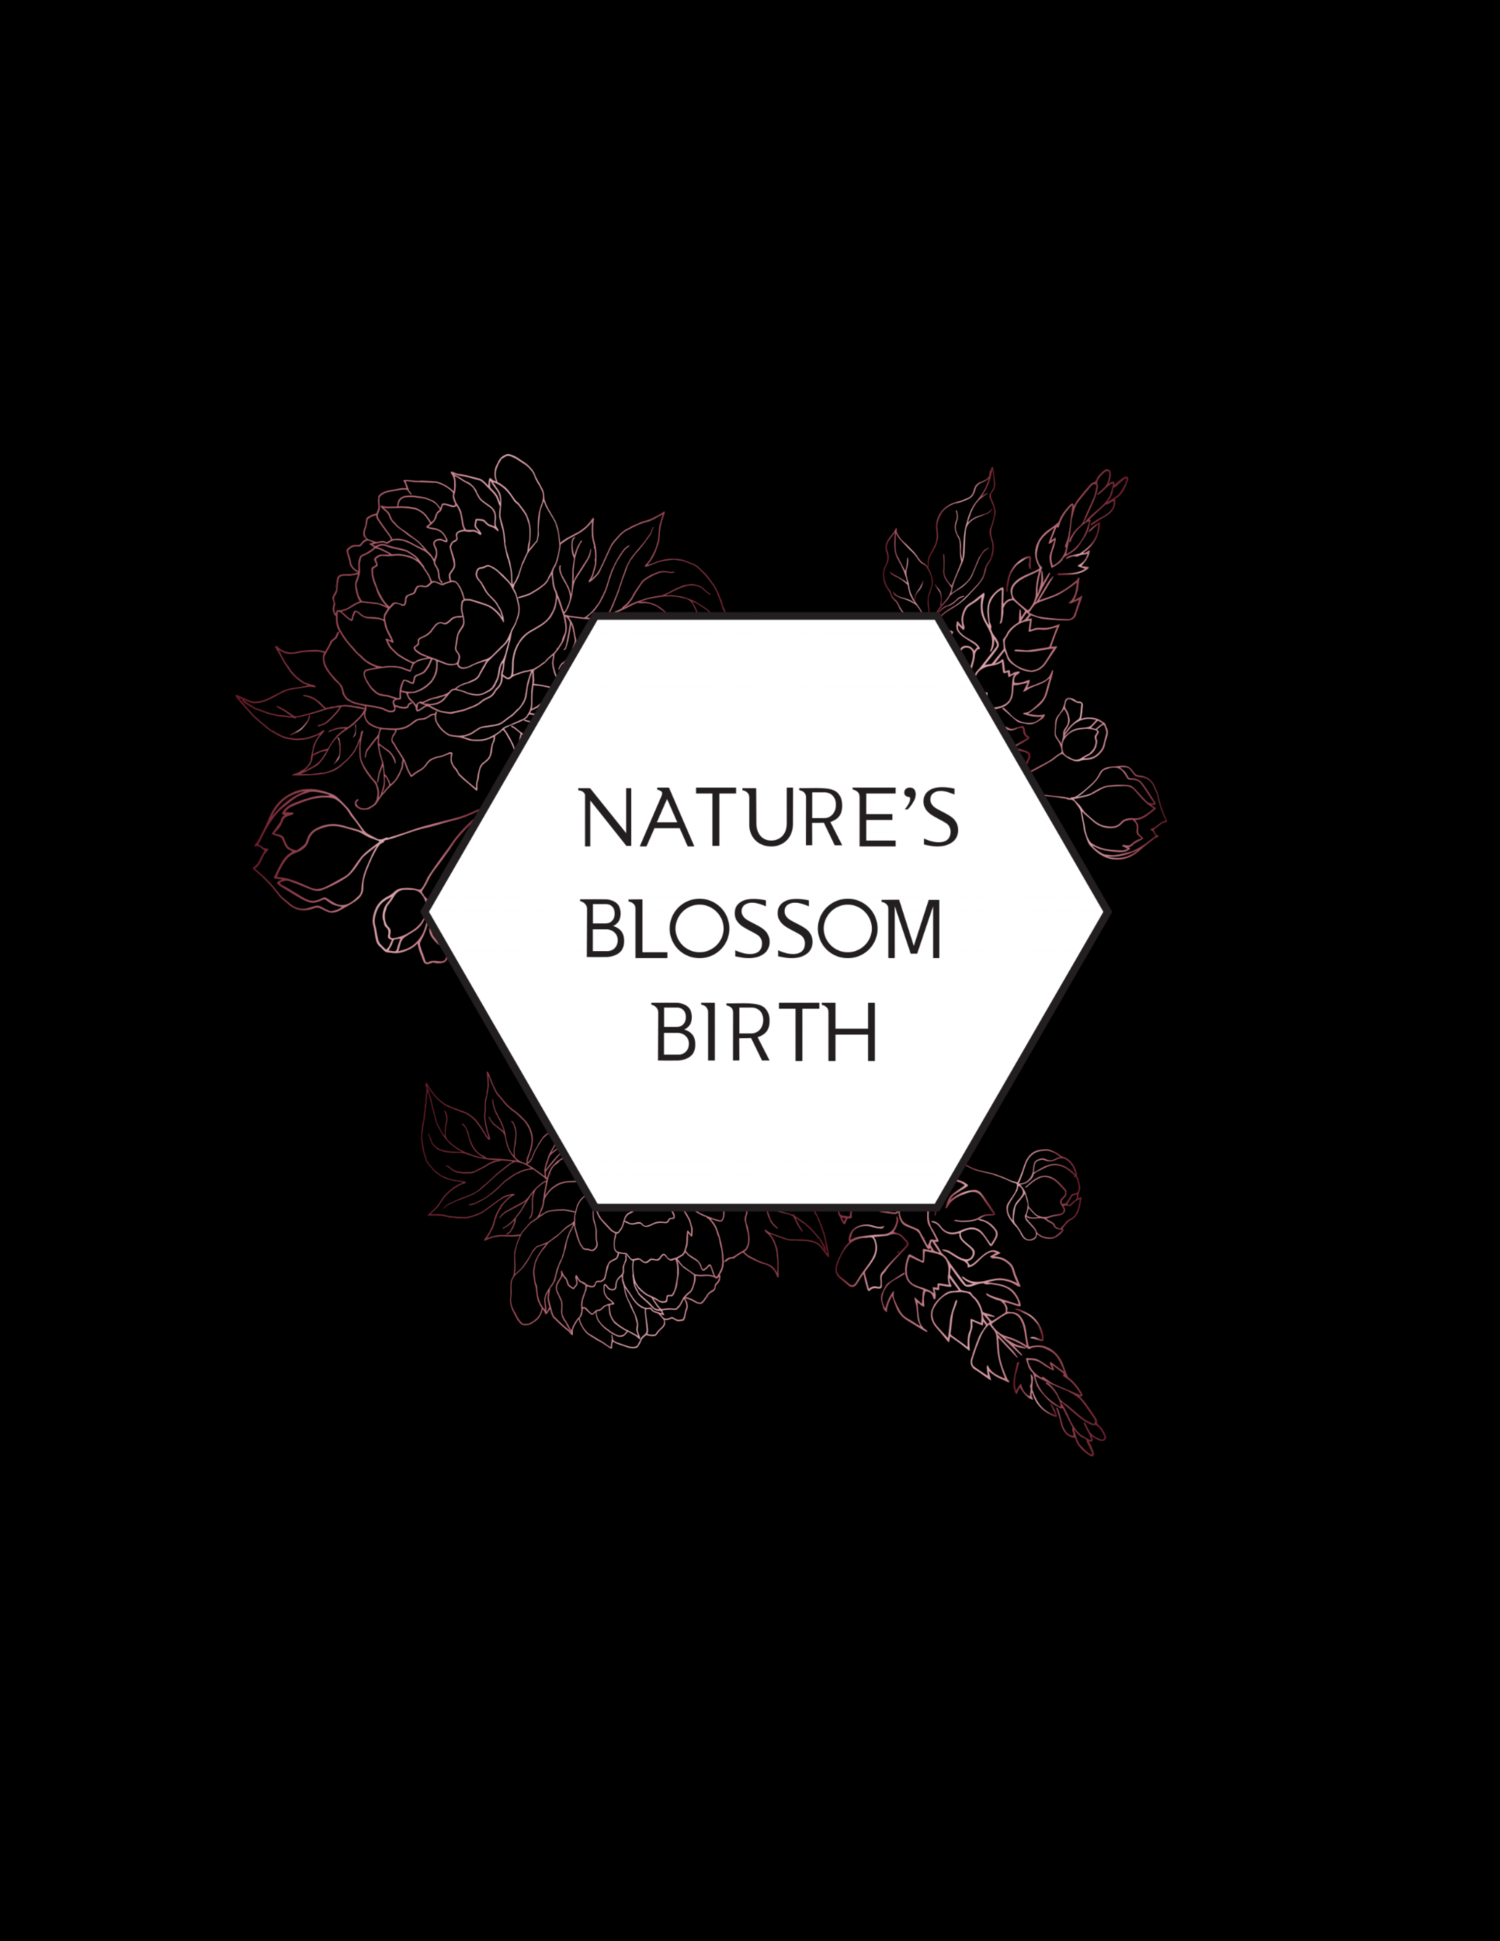 Nature's blossom birth